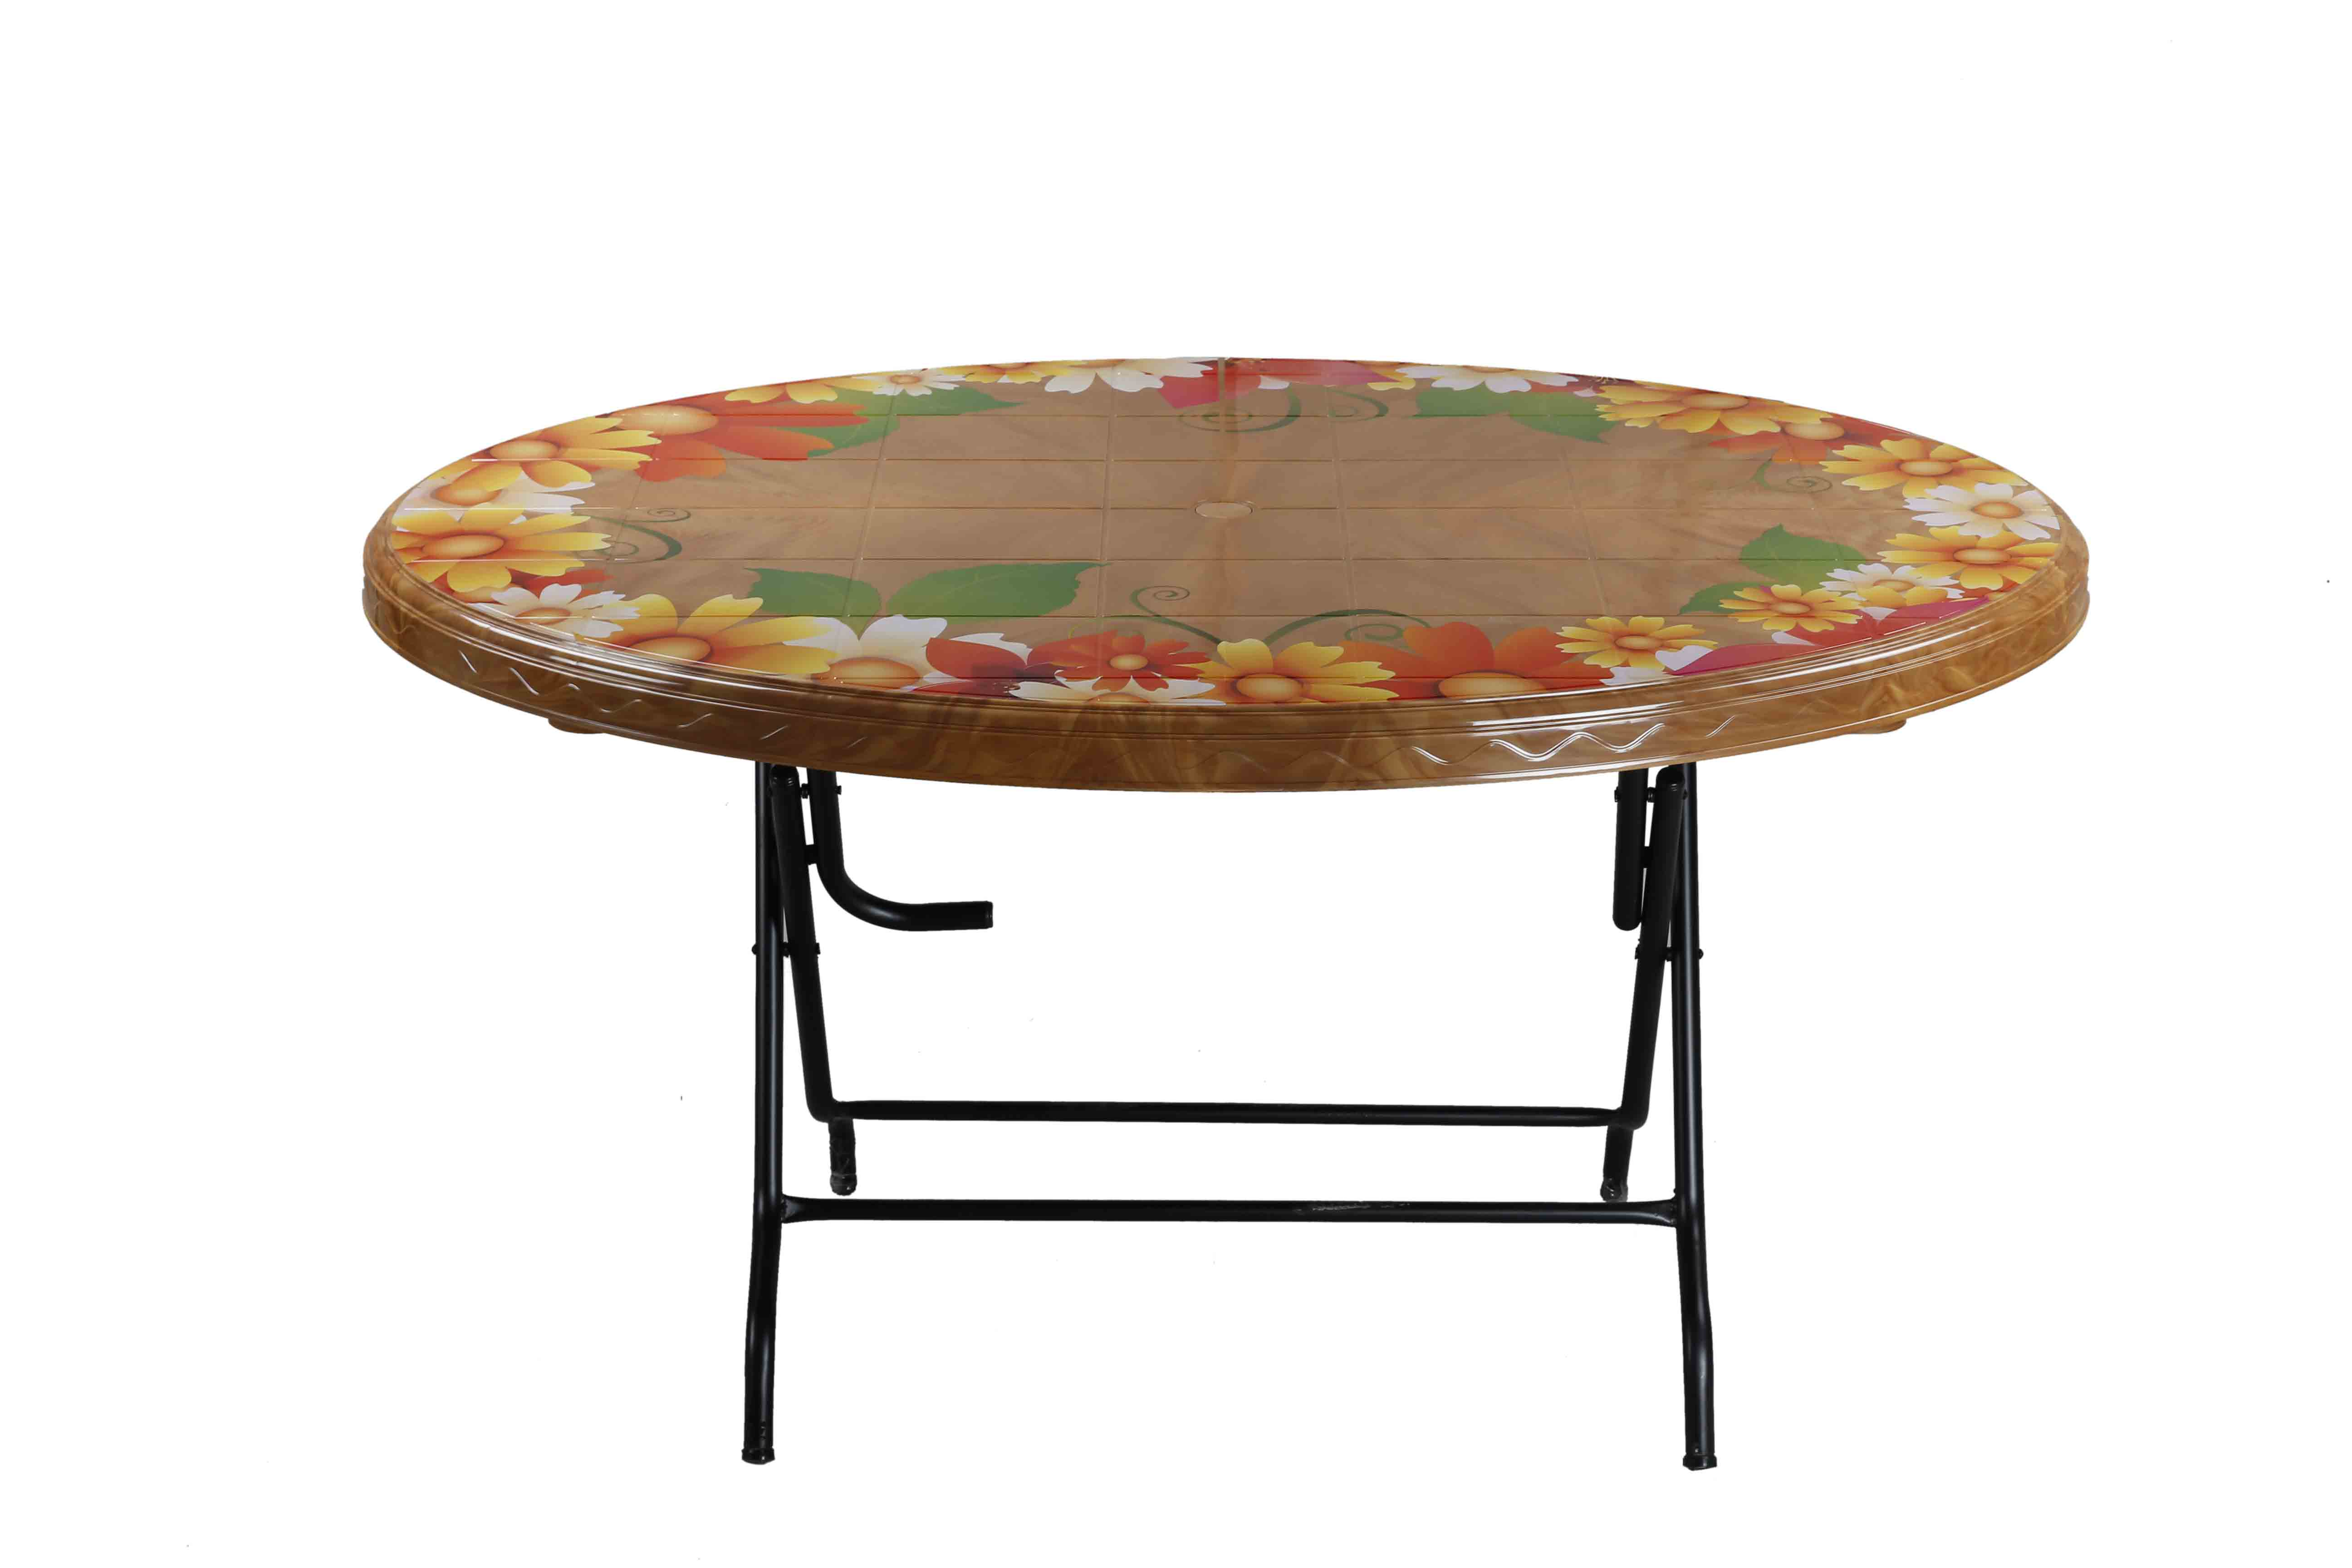 Dining Table 6 Seat Oval  S/L Printed Sunflower-SW